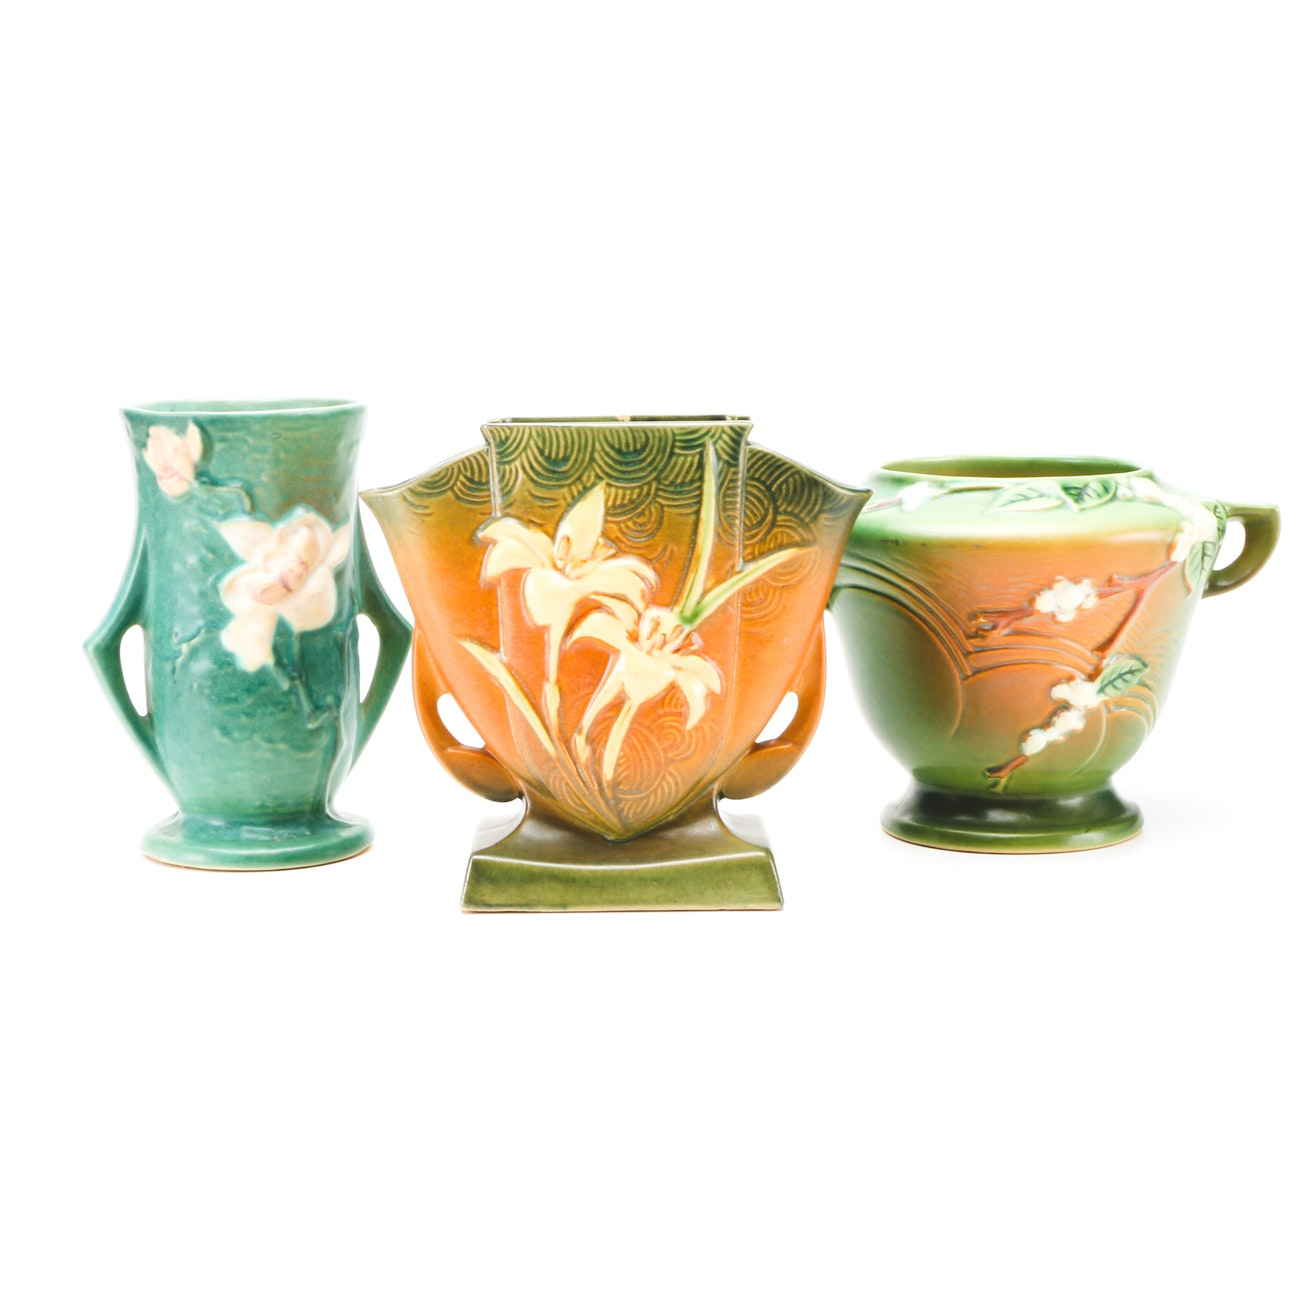 """Roseville """"Magnolia"""", """"Zephyr Lily"""", and """"Snowberry"""" Jardiniere and Vases"""